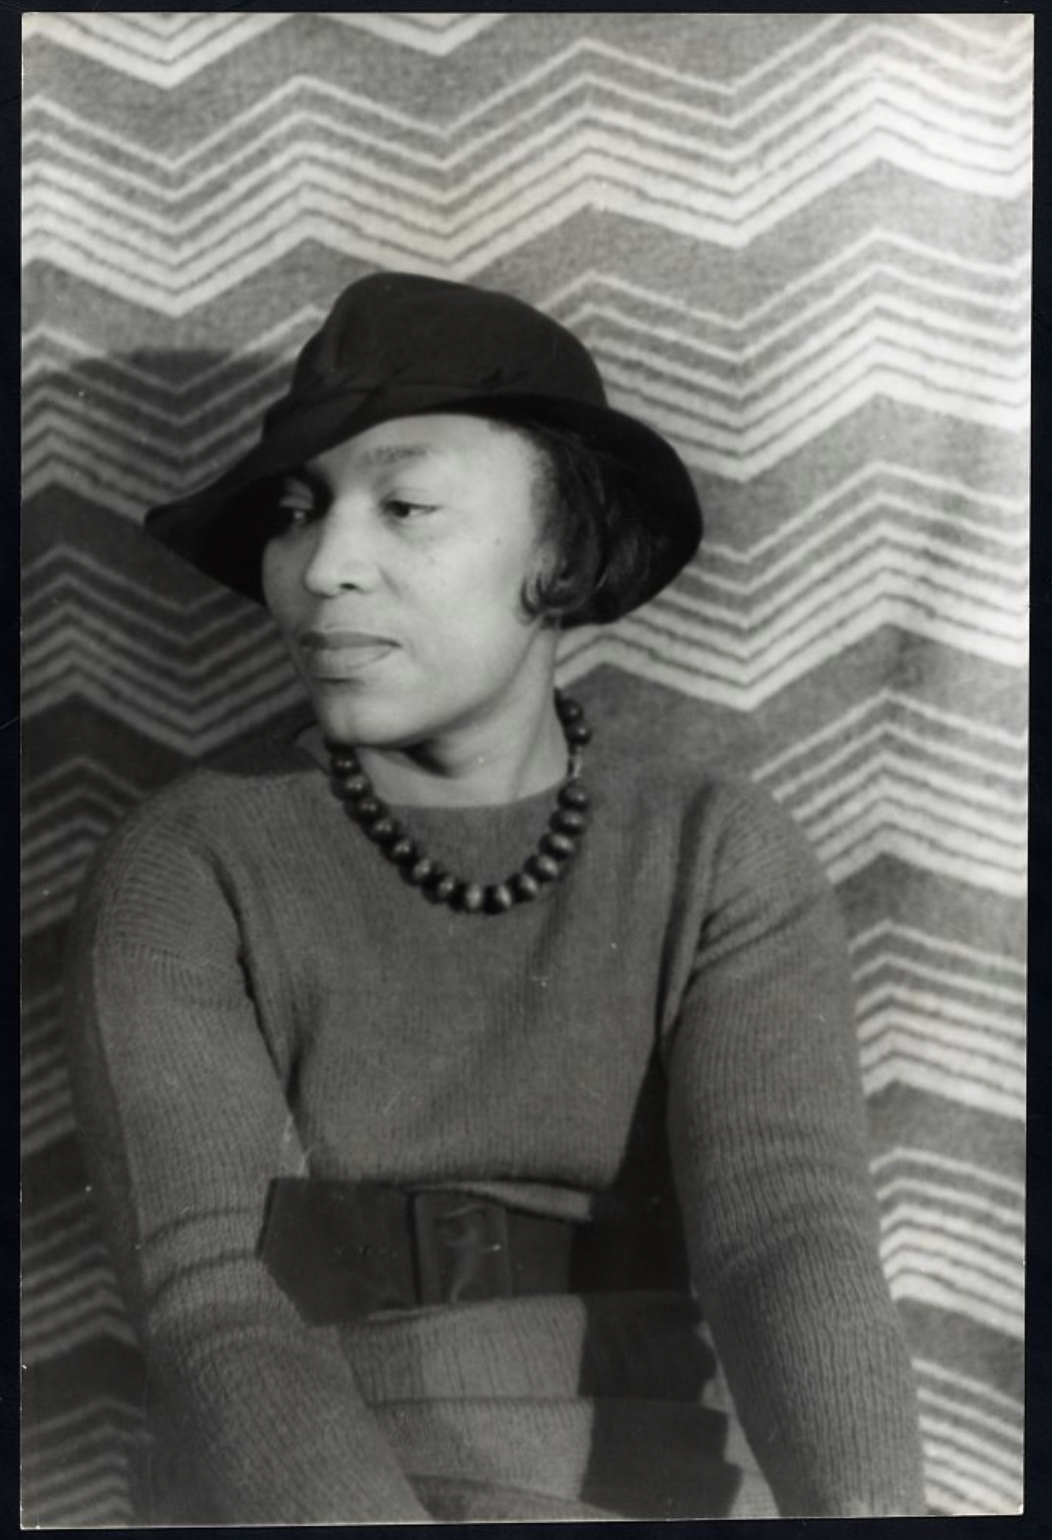 A black and white image of a woman in a black hat looking to the side.